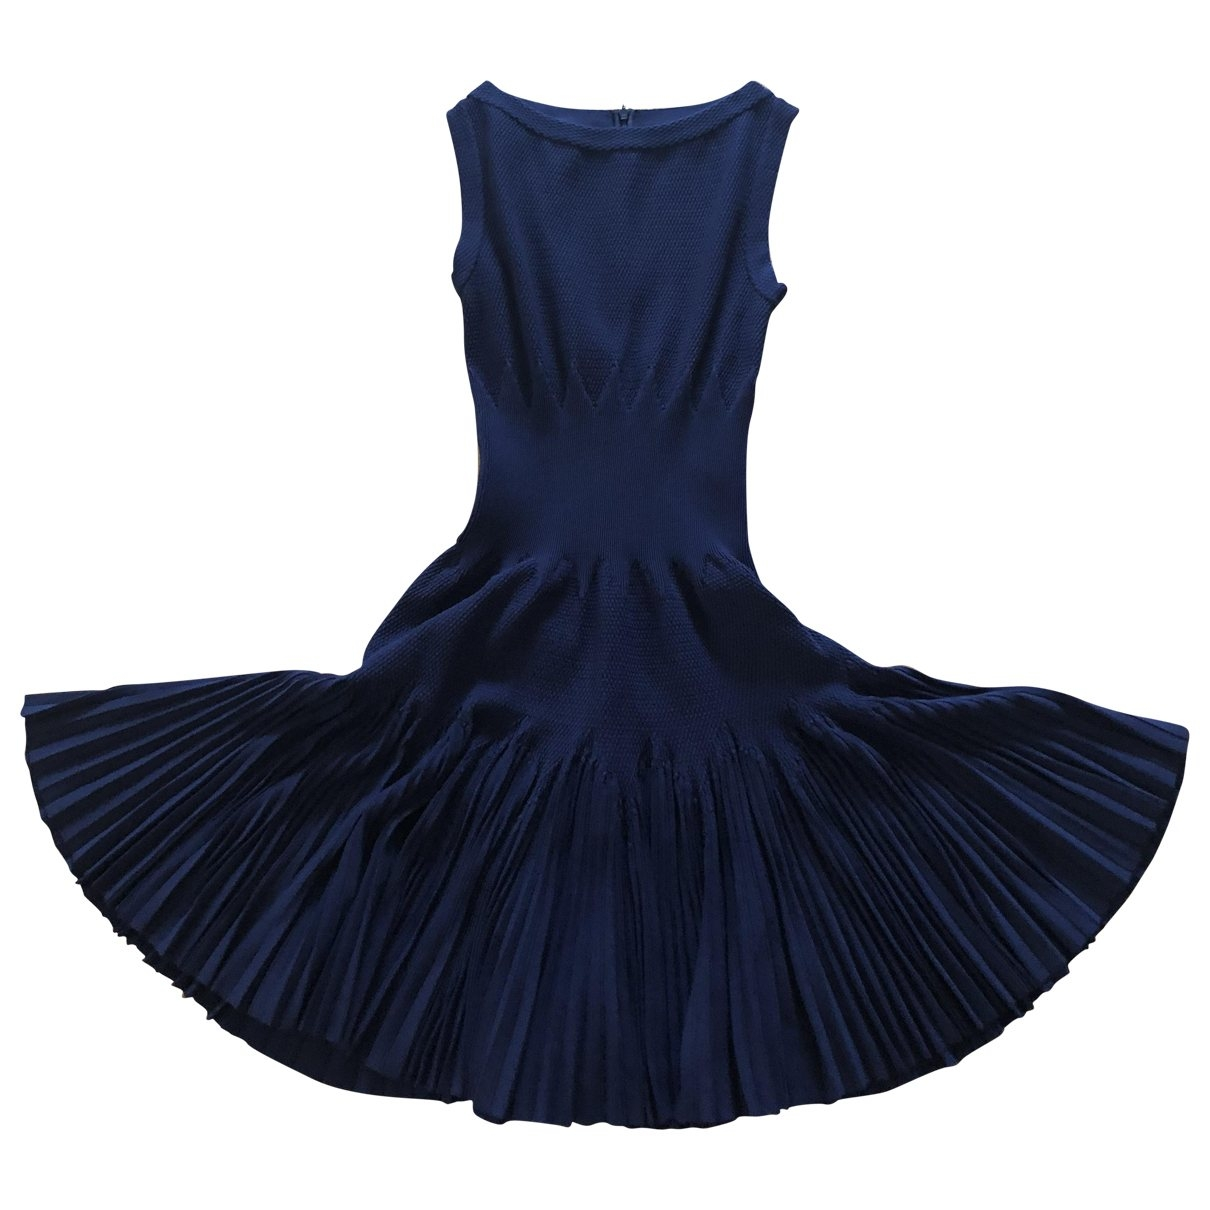 Alaïa \N Navy dress for Women 36 FR